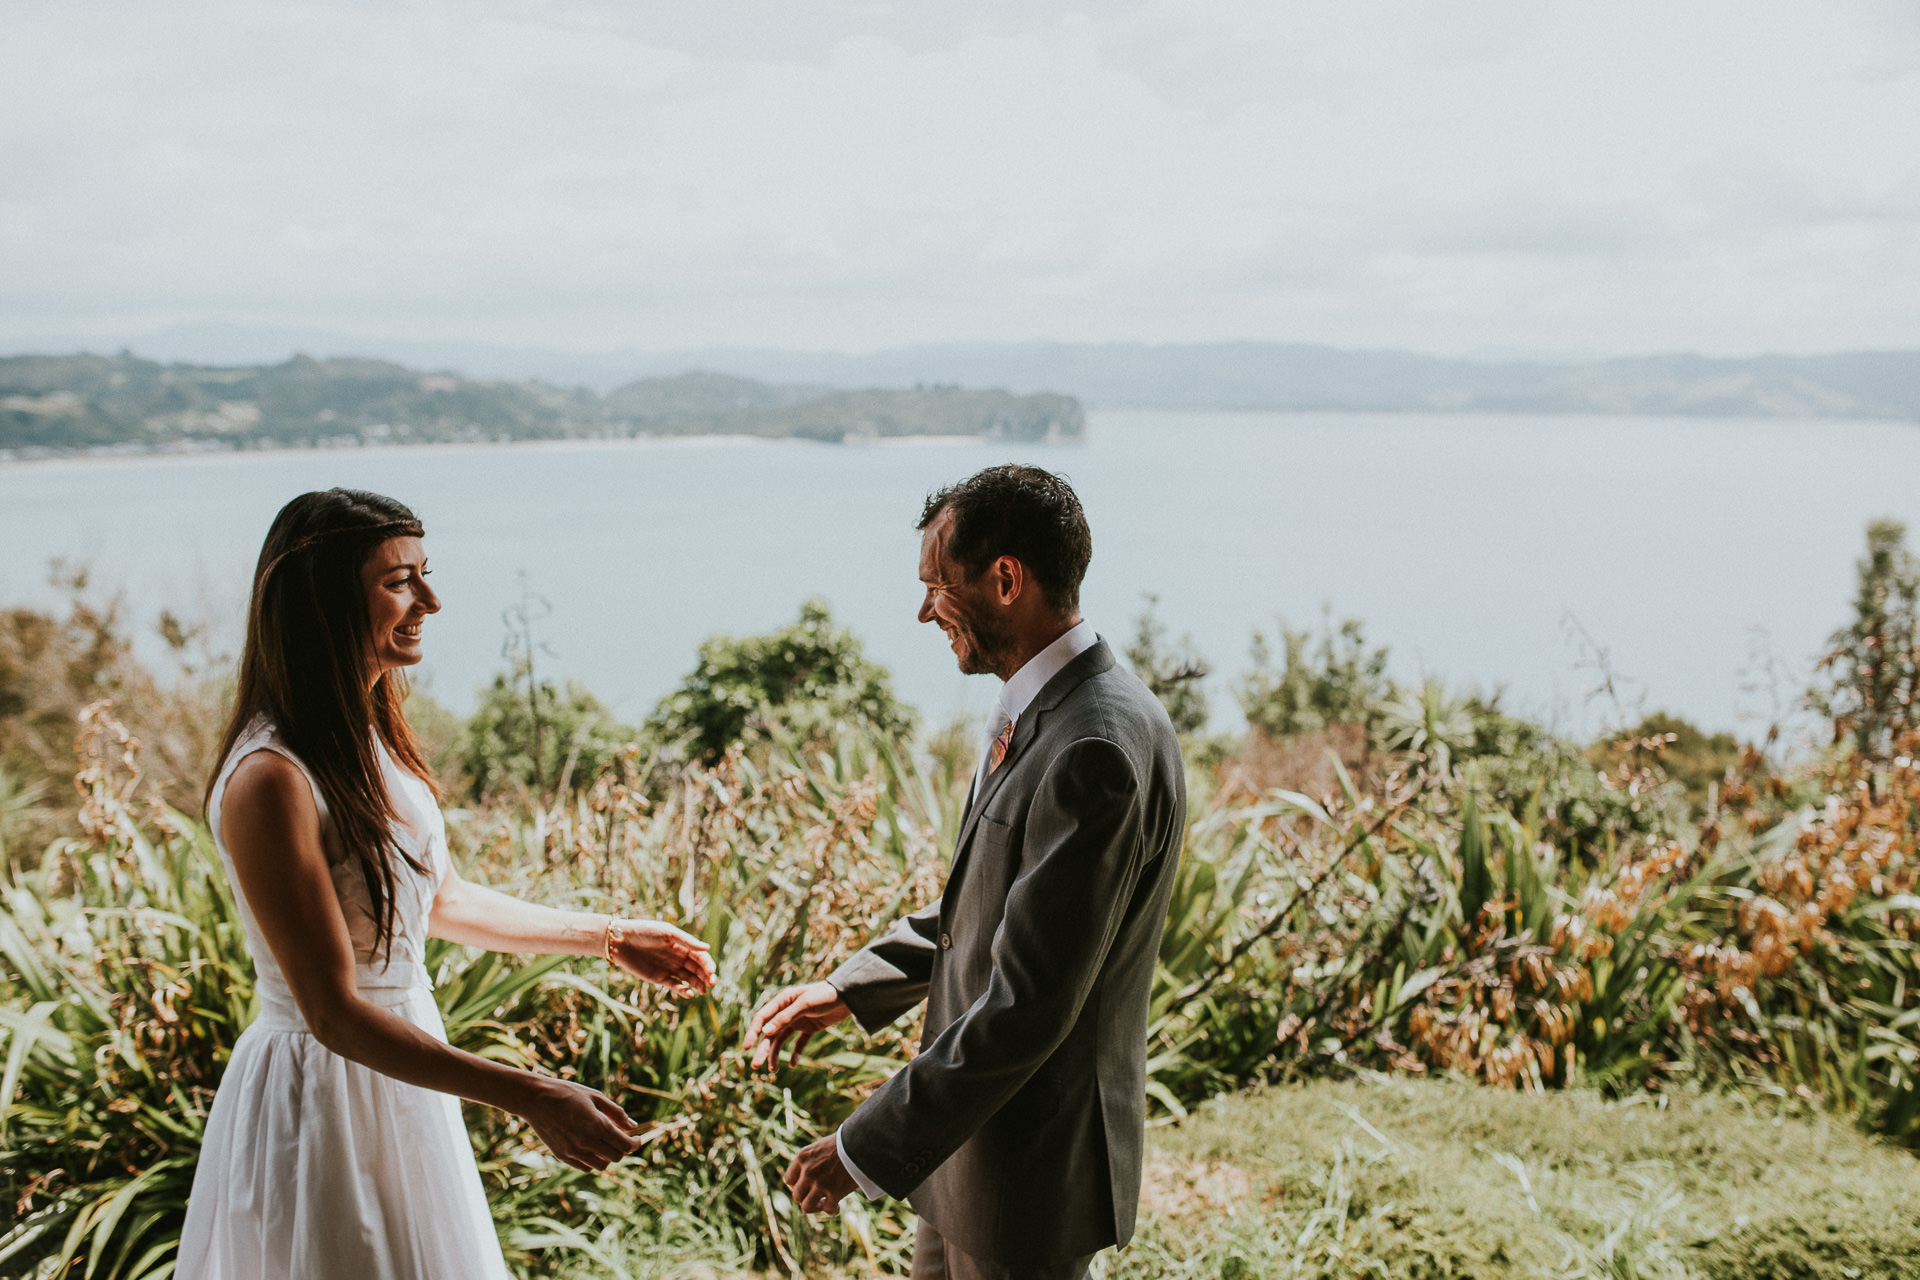 Coromandel New Zealand wedding photography, Coromandel wedding photography, hahei wedding, new zealand wedding photography, destination wedding photographer, ayesha photography, bride and groom, beach wedding, first look